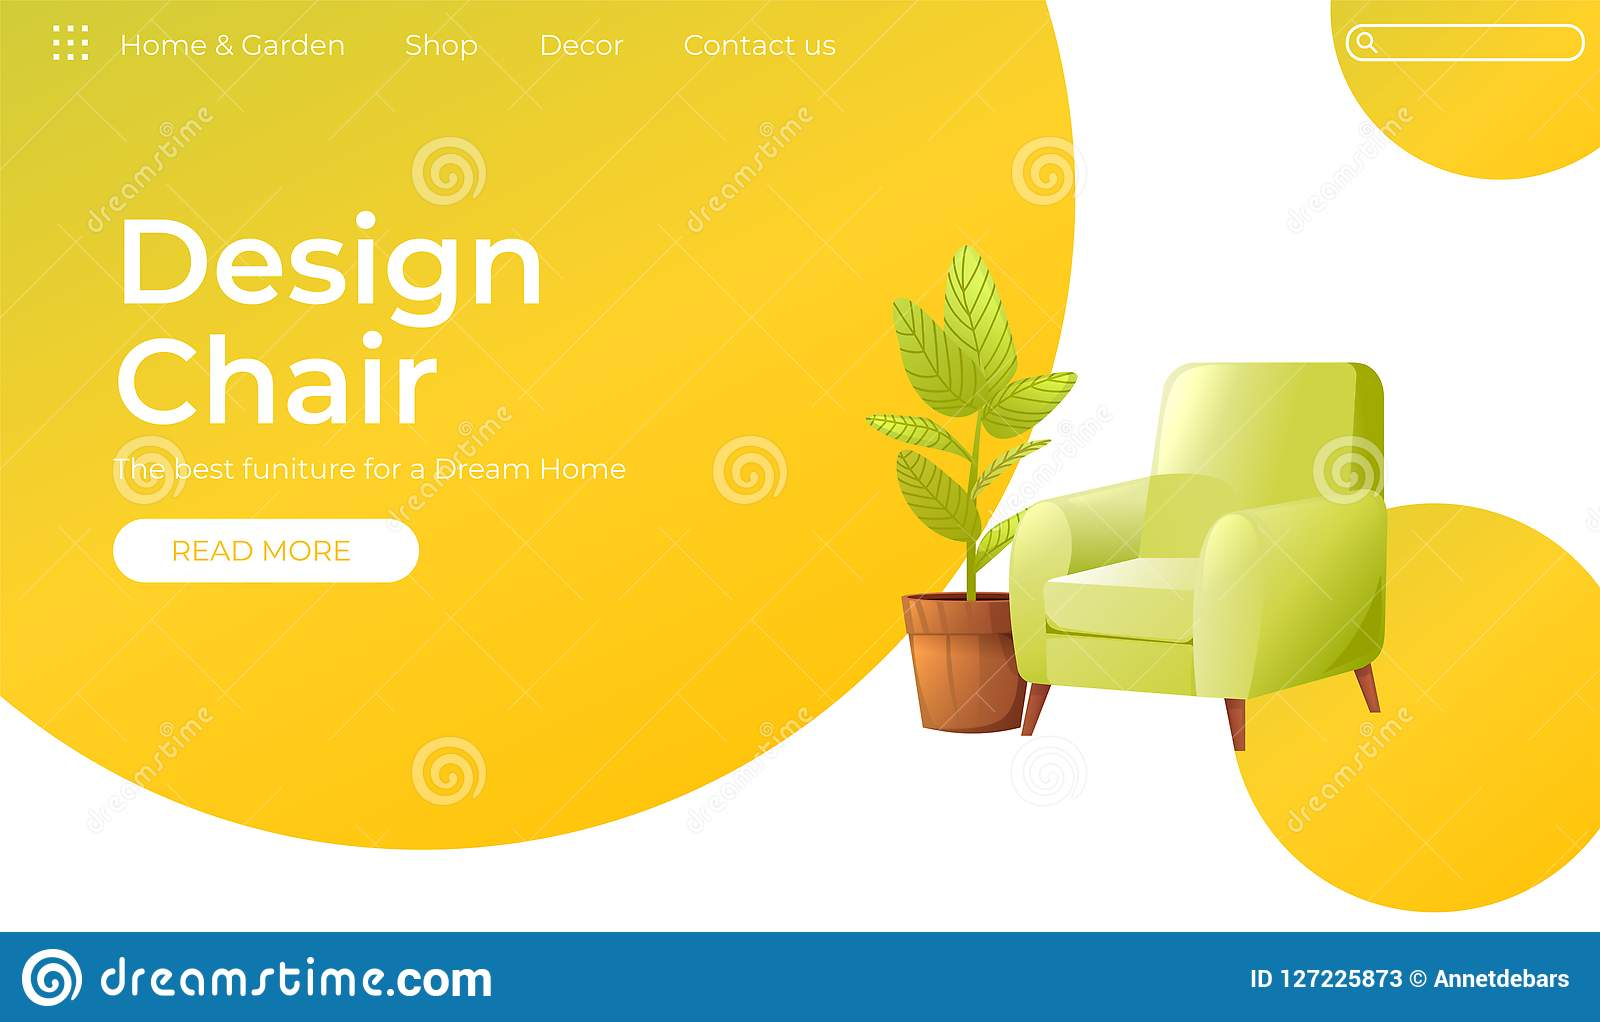 Classic Chair for your home interior design banner. Landing Page Website conept. Comfortable armchair with a plant in a